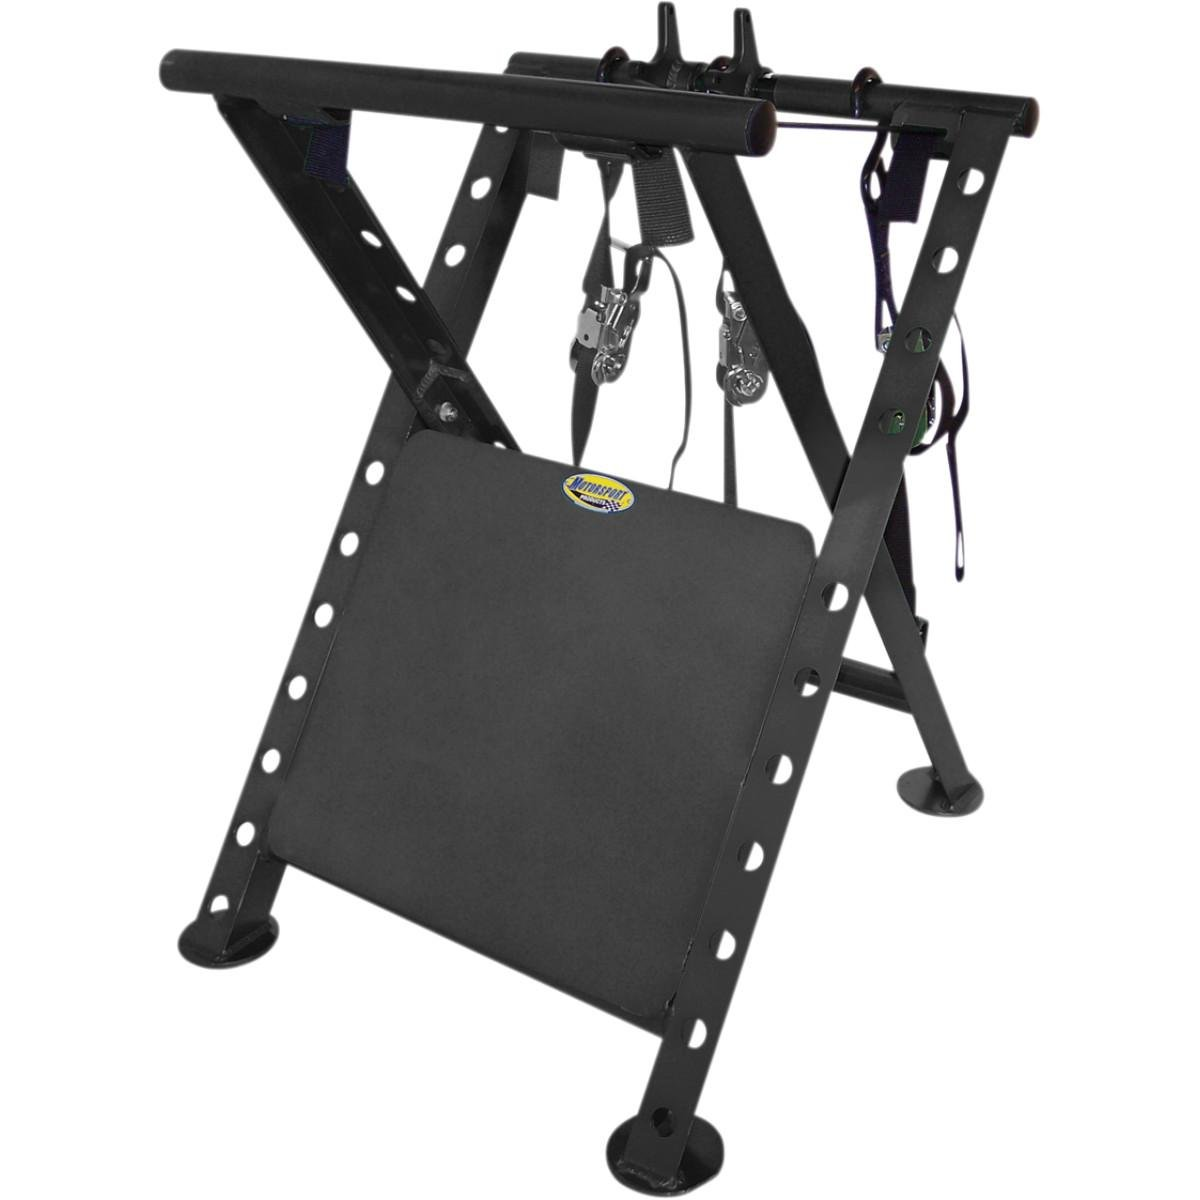 Motorsport Products Pro ATV X-Stand Black 90-2012 by Motorsport Products